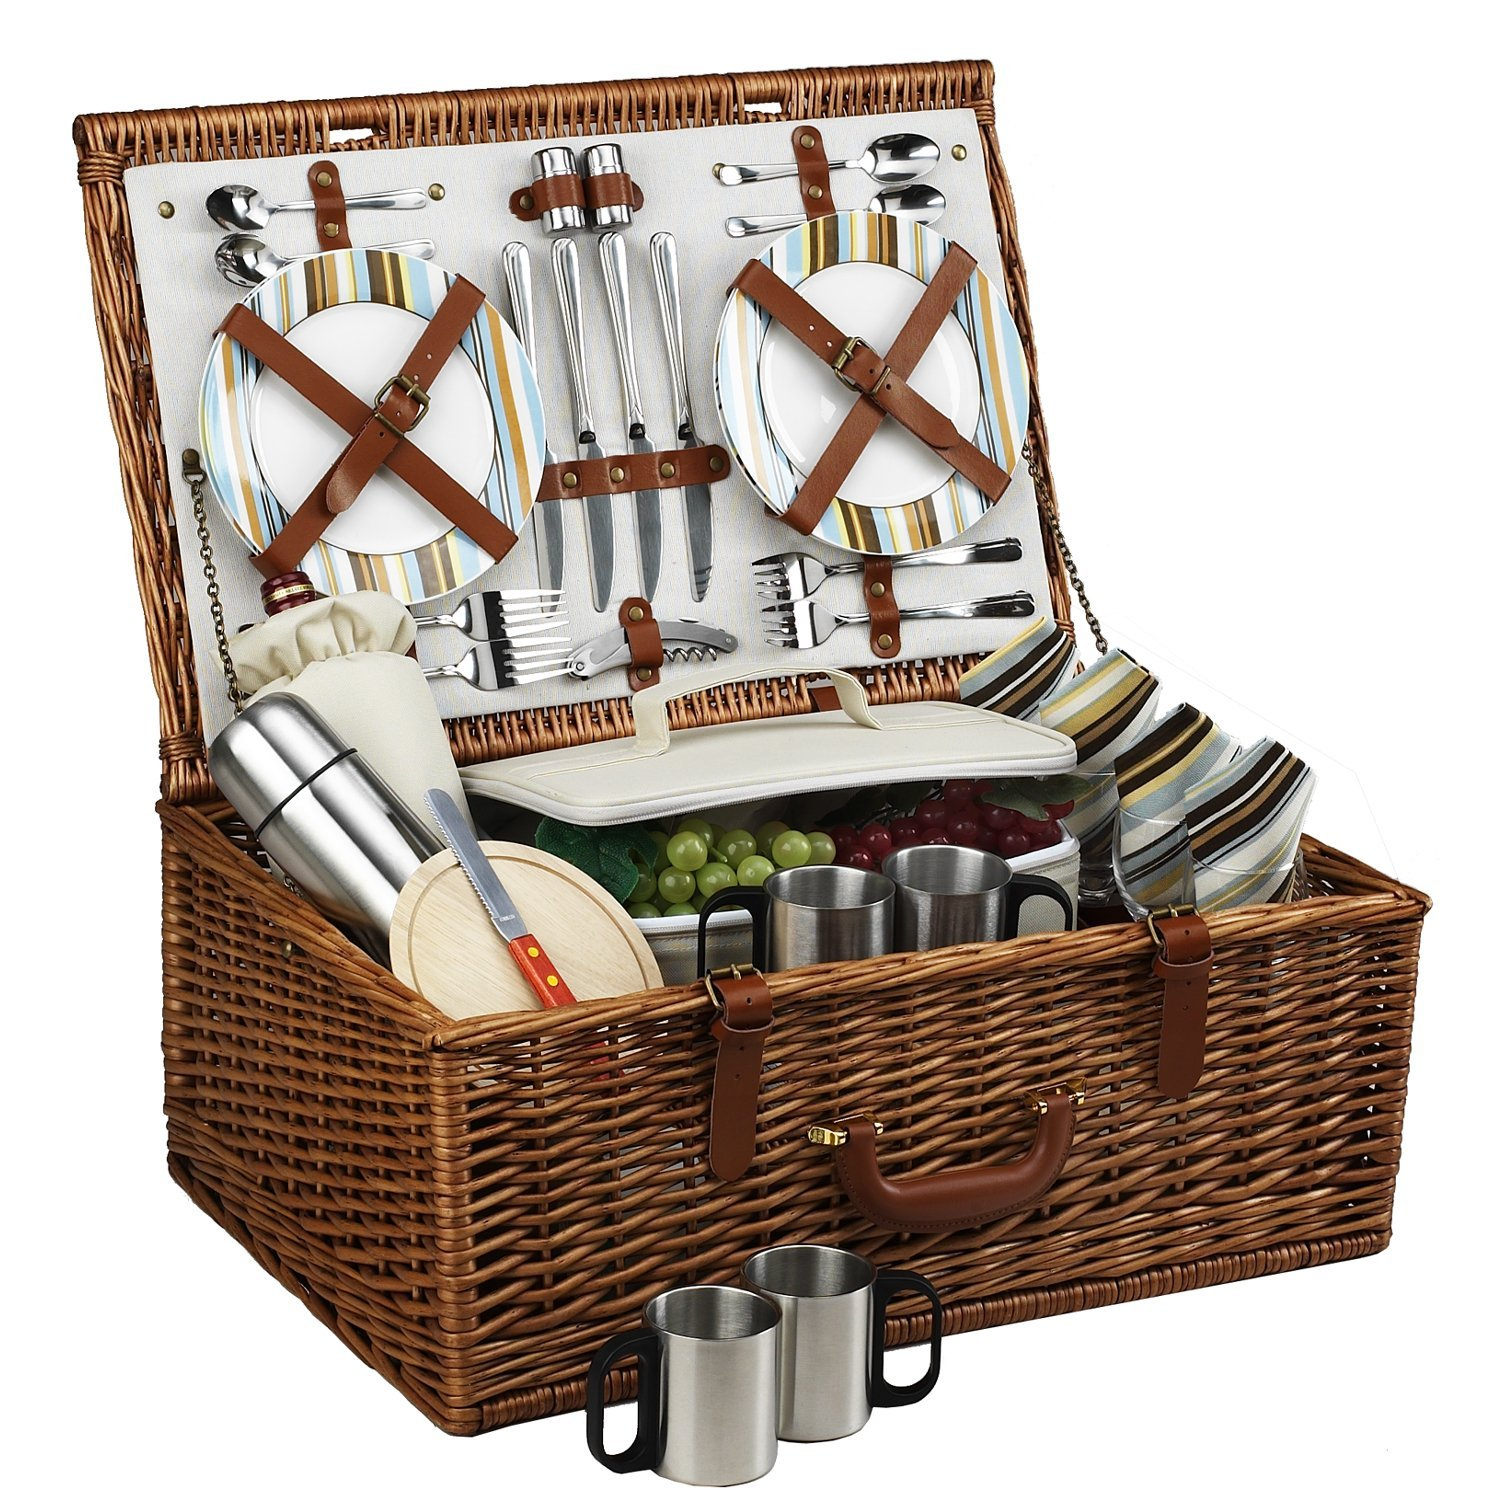 Best Picnic Basket For 2 : Wicker picnic baskets for olivia s place